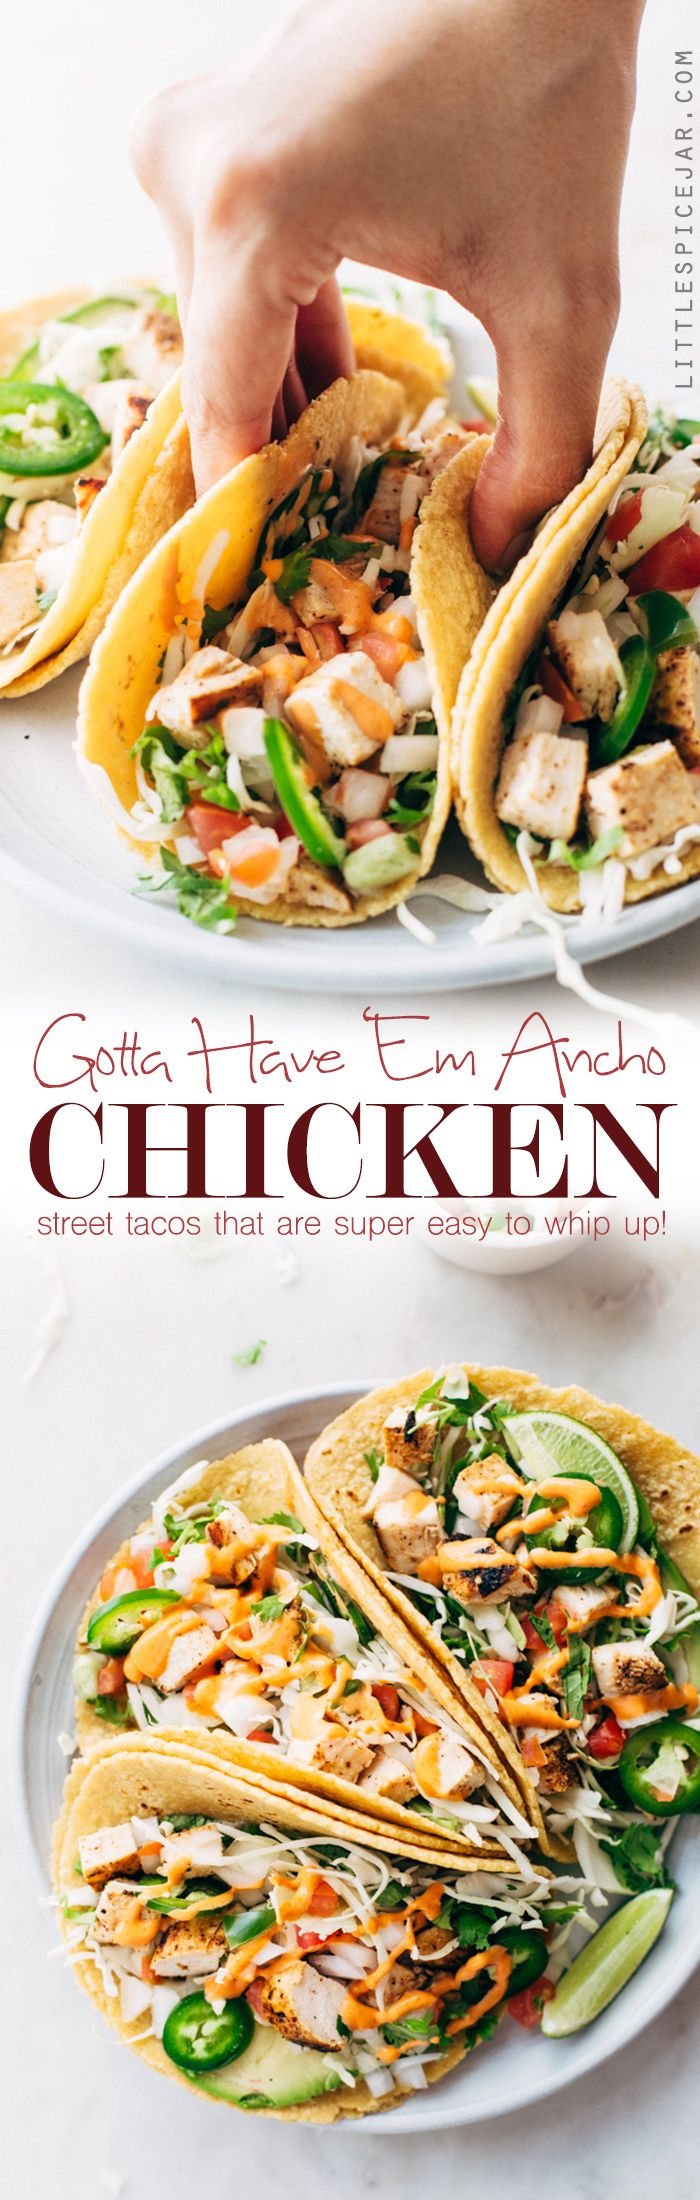 Gotta Have 'Em Ancho Chicken Street Tacos - a simple chicken street taco loaded with all your favorite taco toppings!